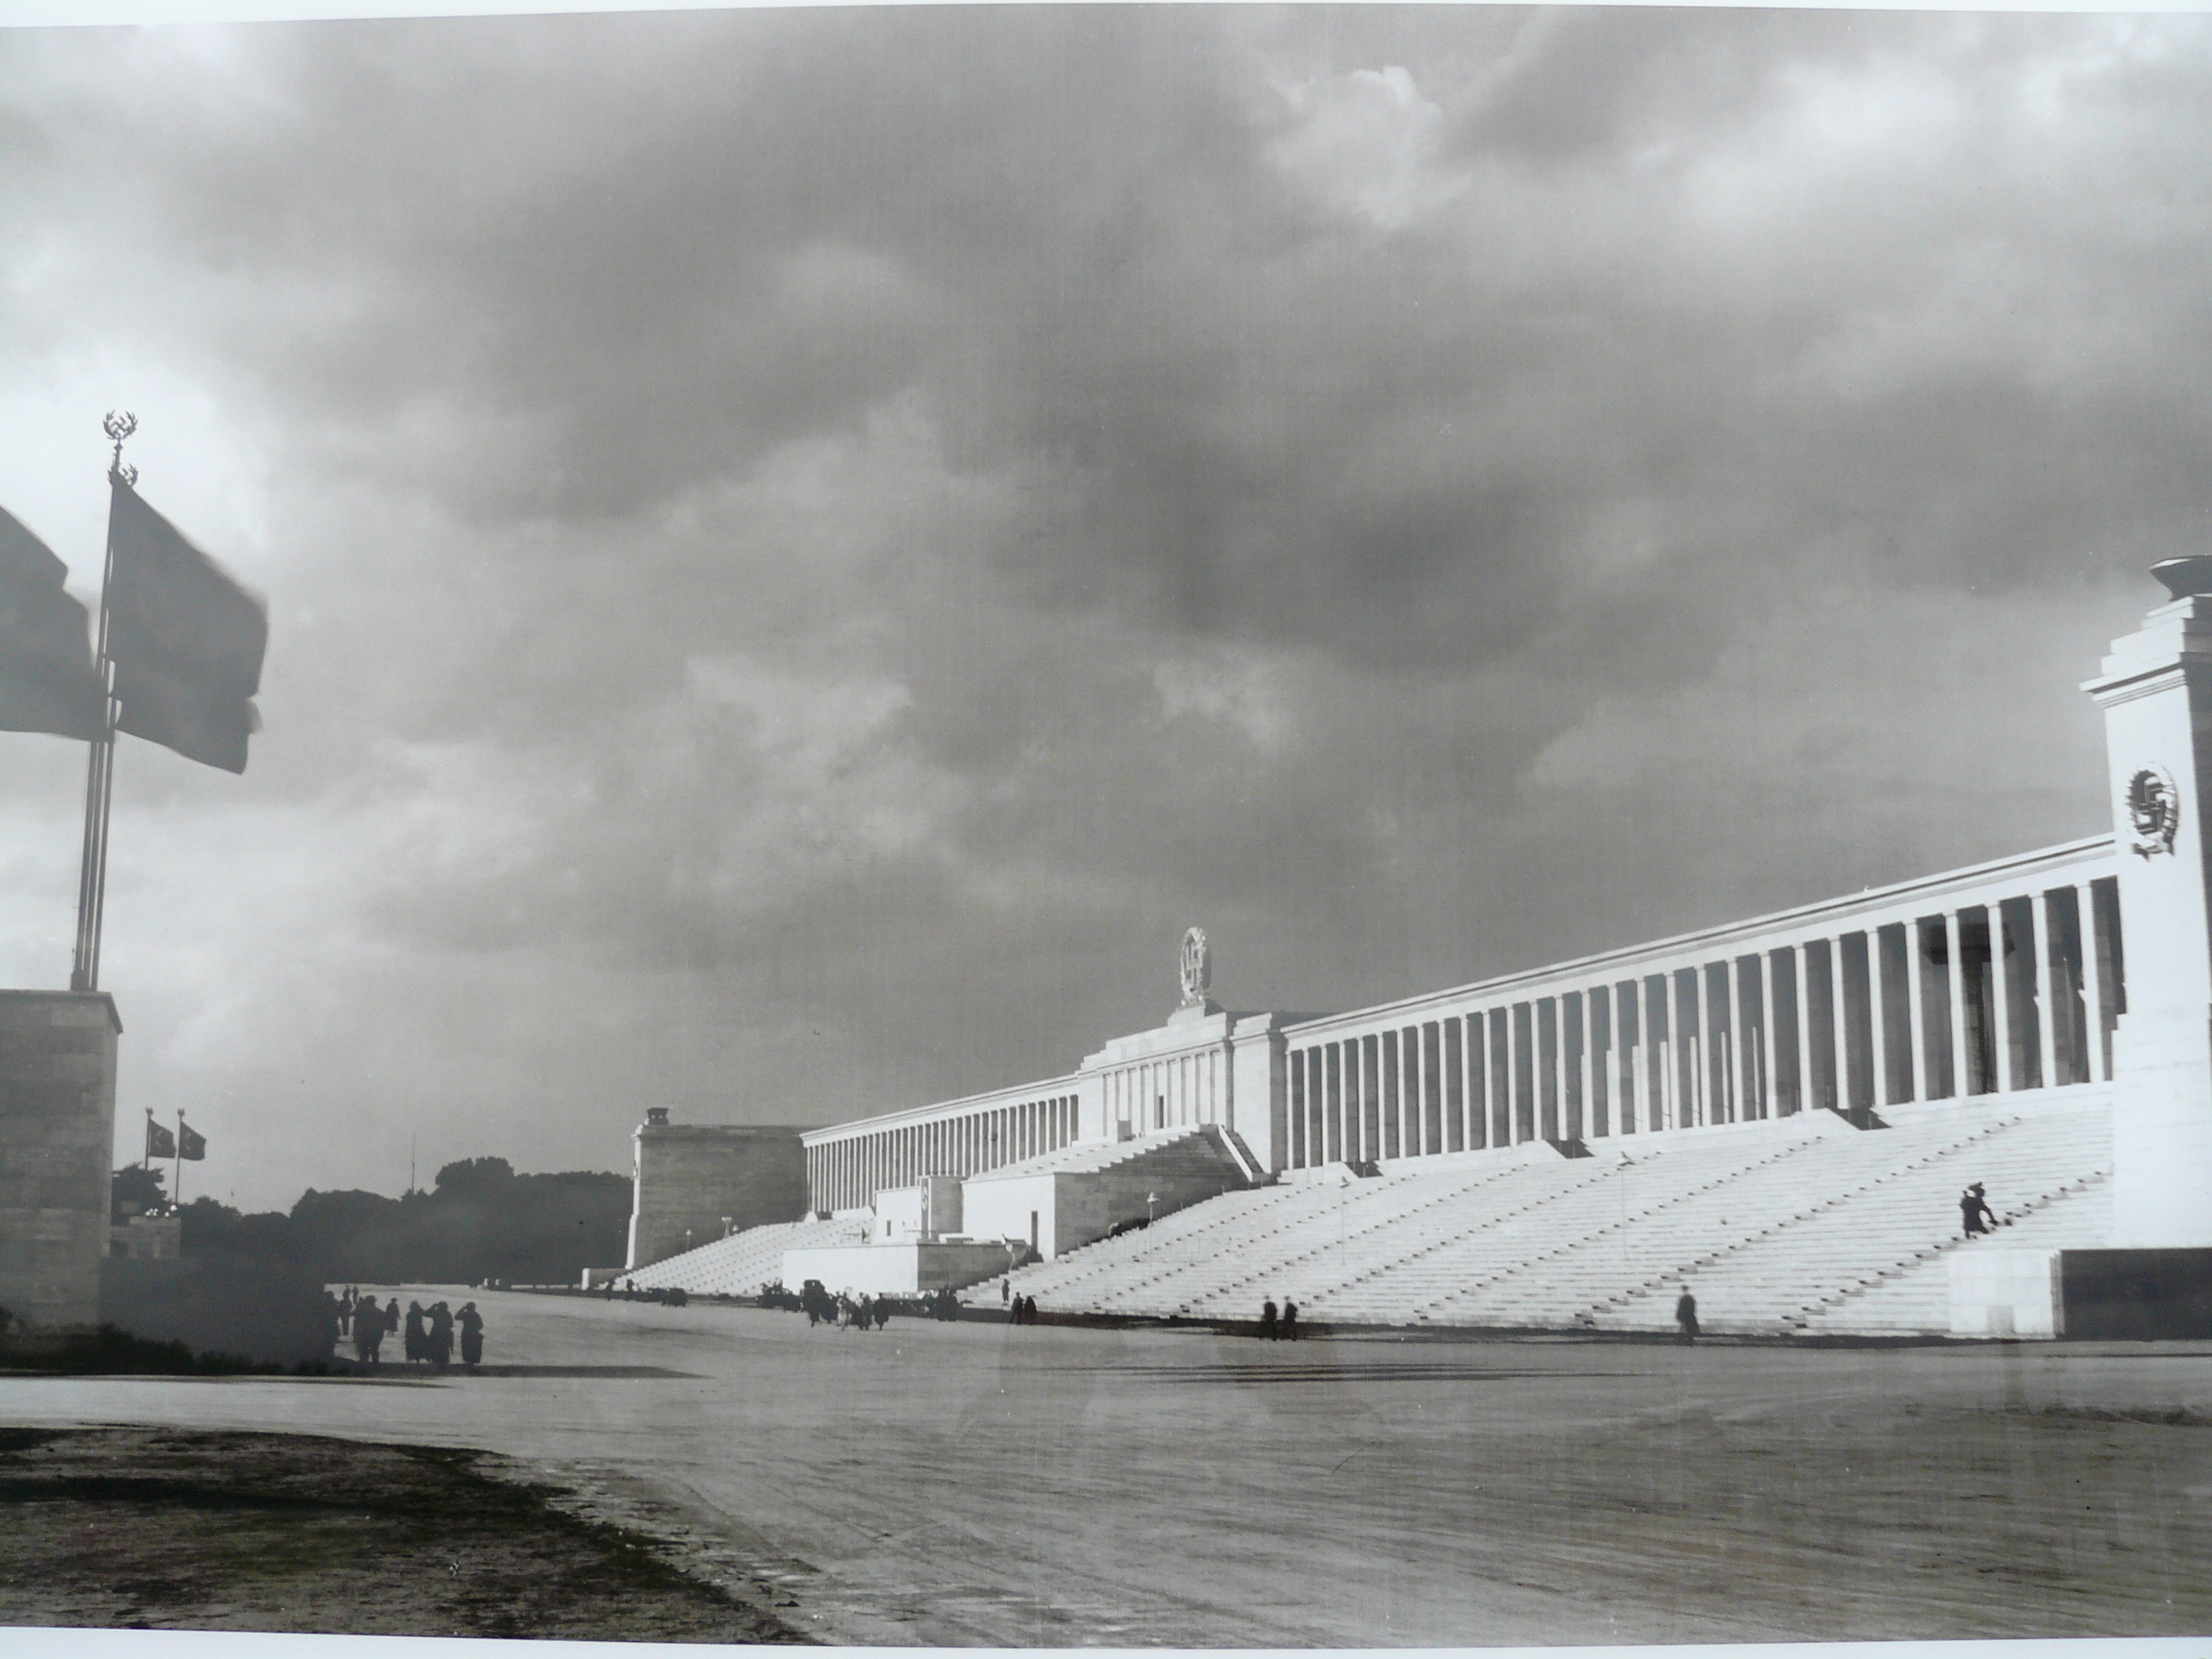 1940's picture of the Zeppelinfeld (Zeppelin Field) in Nürnberg where the Nazi's held their rallies.